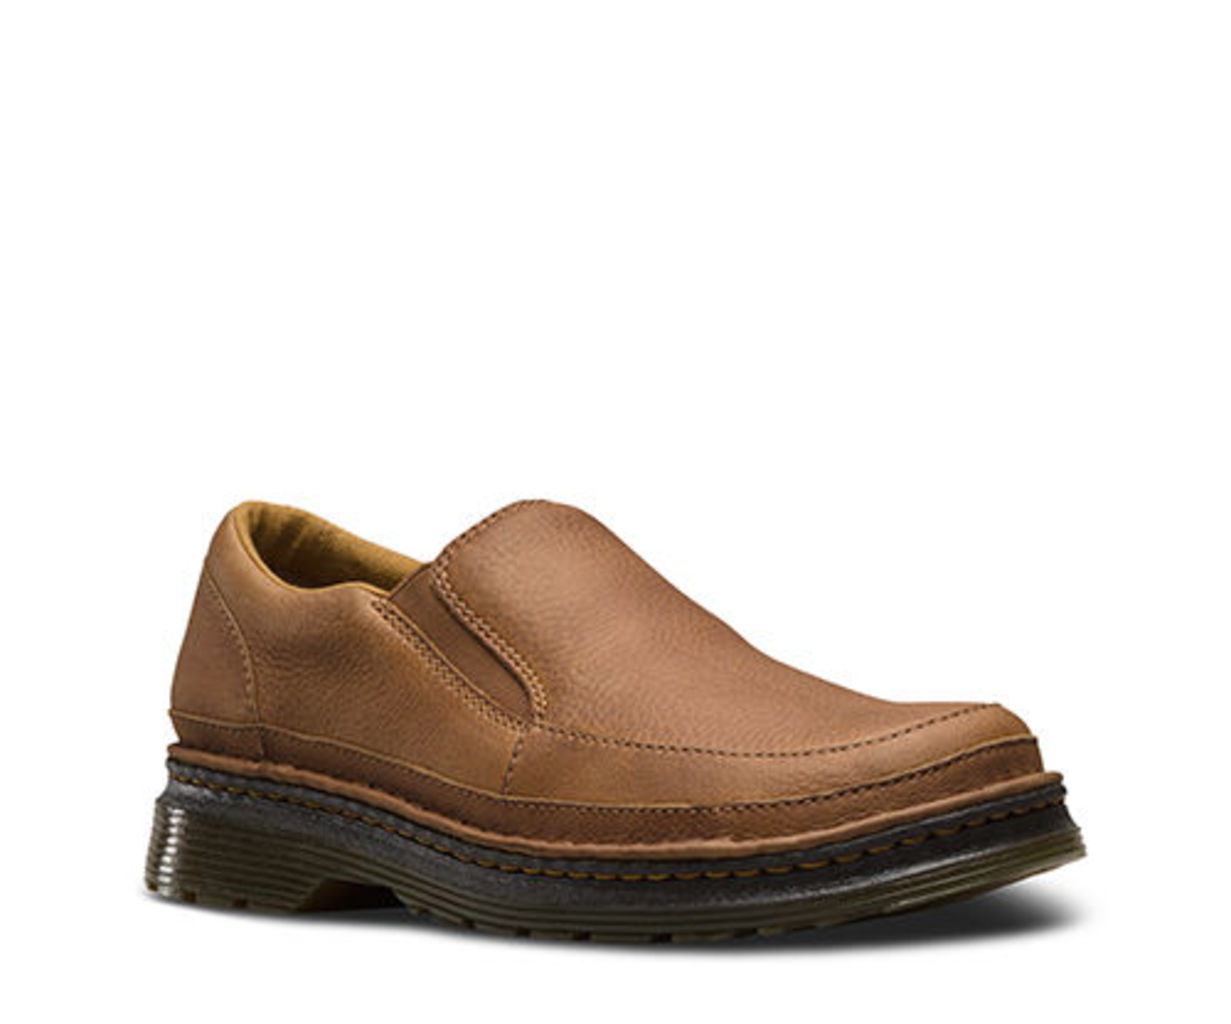 Hickmire Shoe